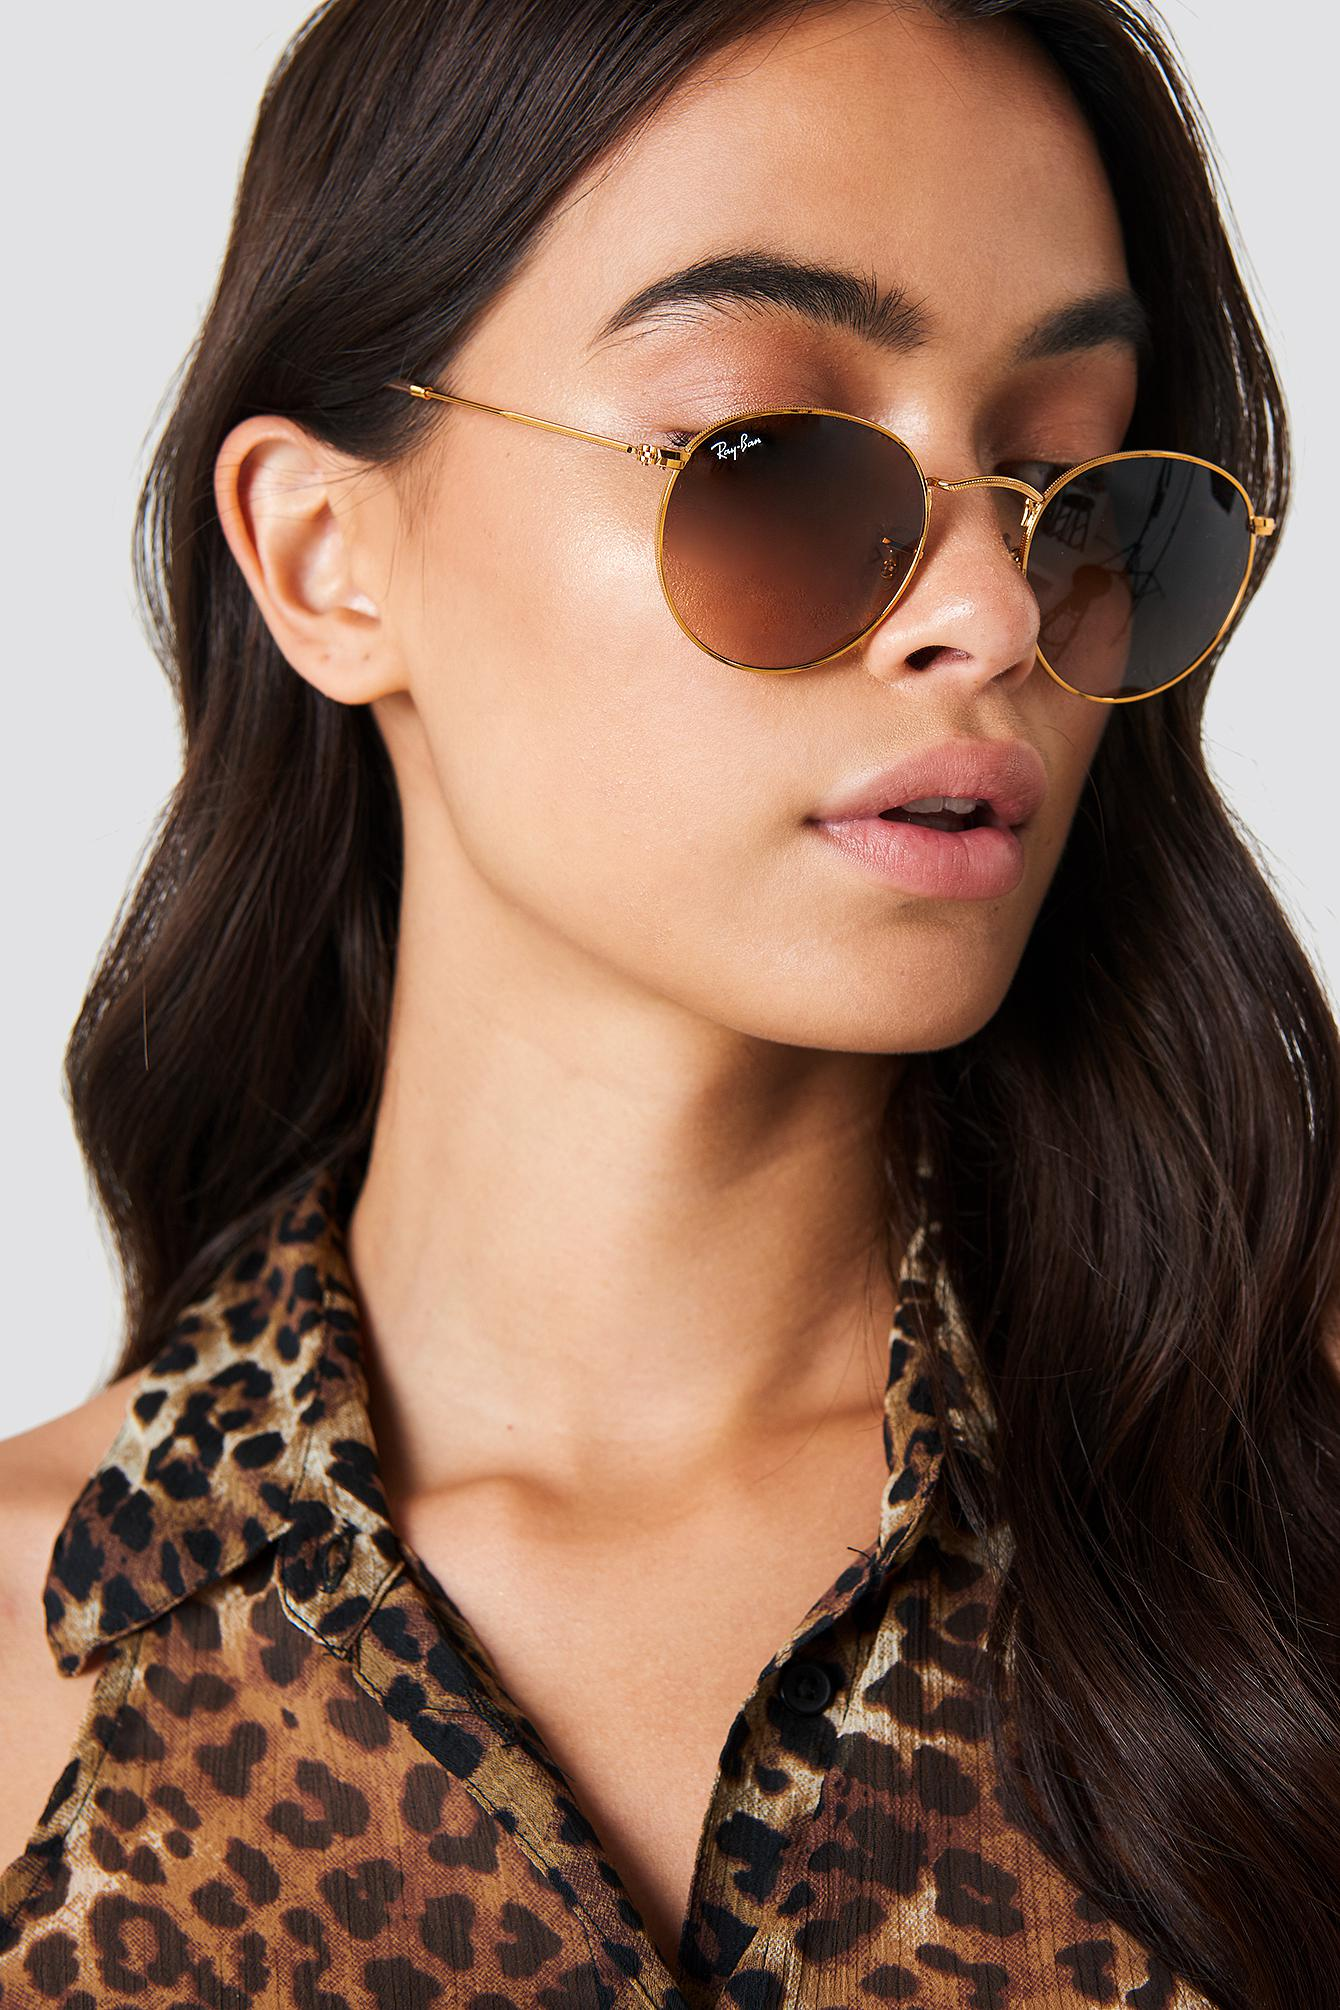 f5d9a5fea935 Ray-Ban Metal Round 1 Shiny Light Bronze in Pink - Lyst